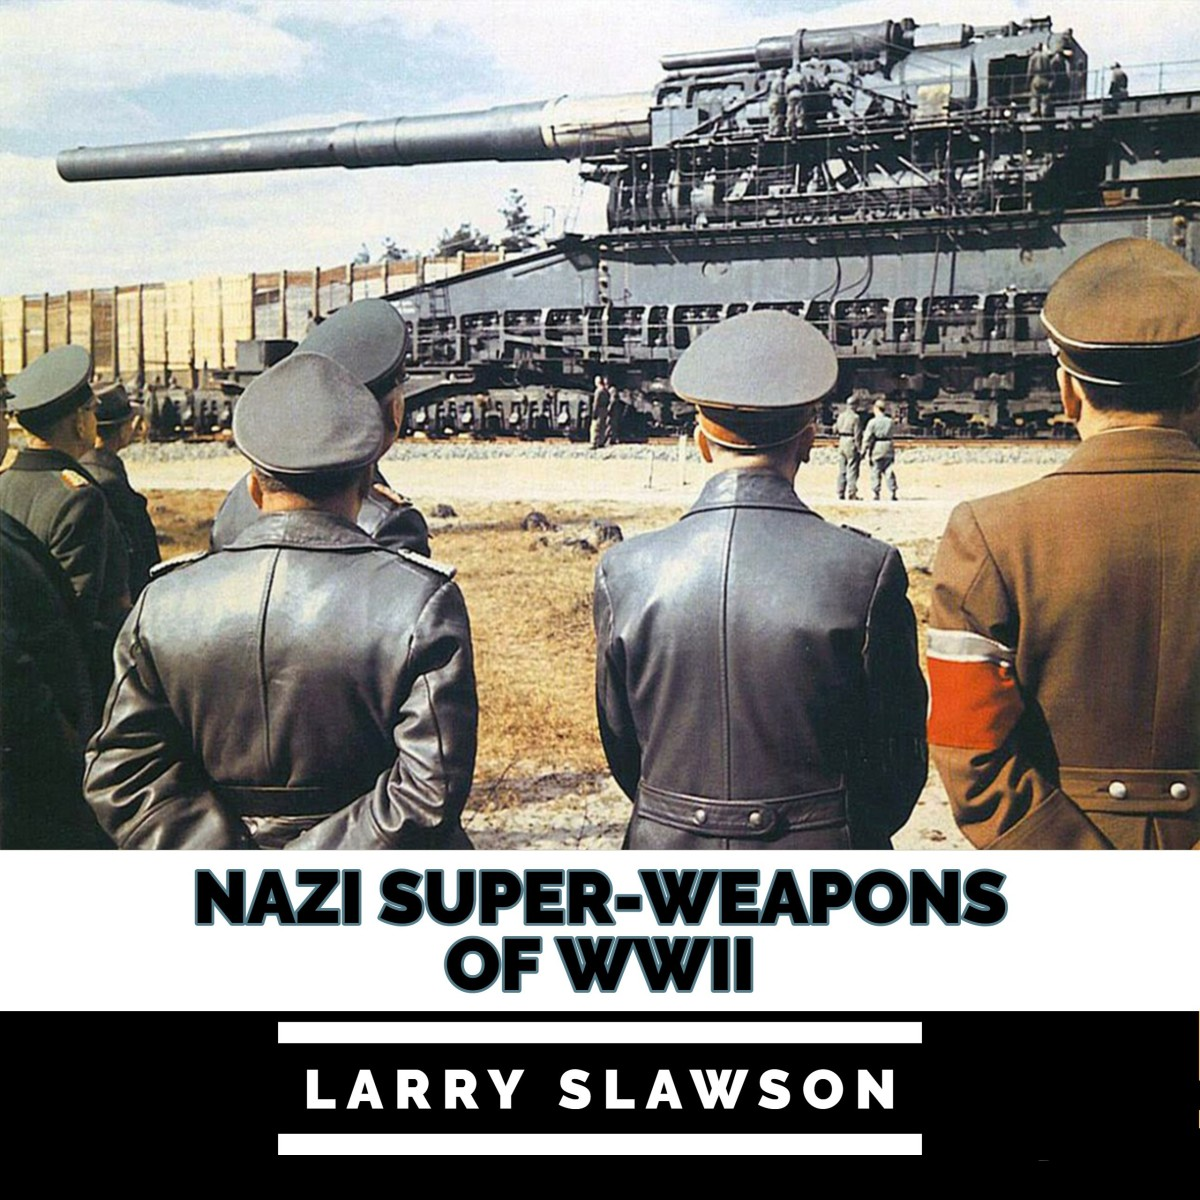 Nazi Super-Weapons of World War II